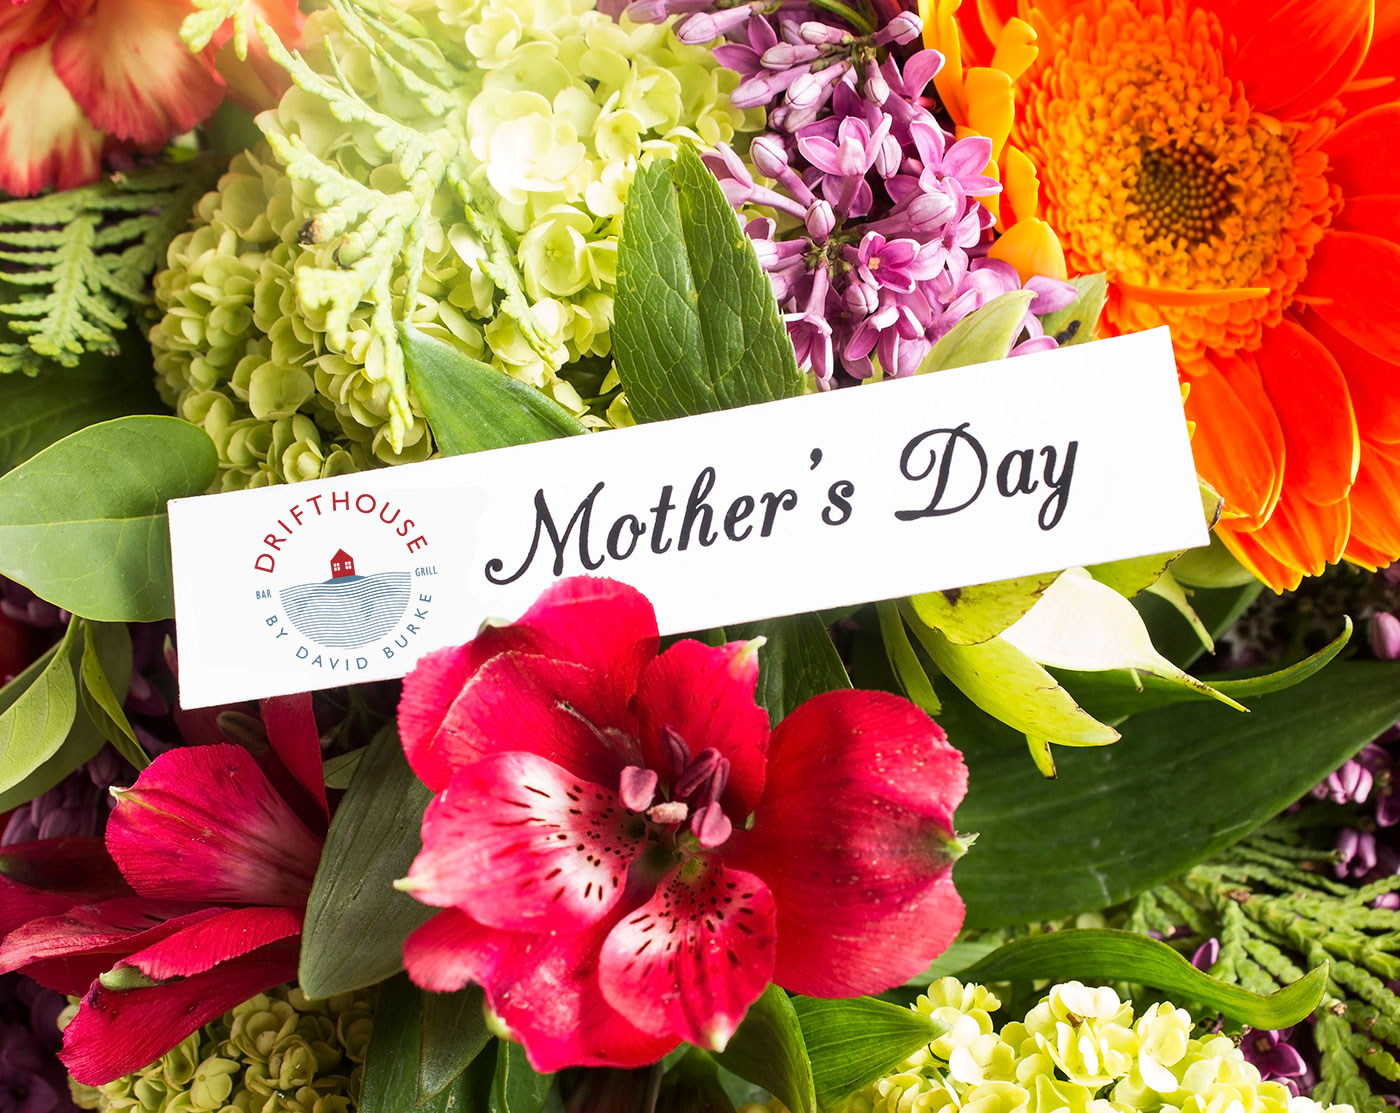 Mother's Day at Drifthouse by David Burke